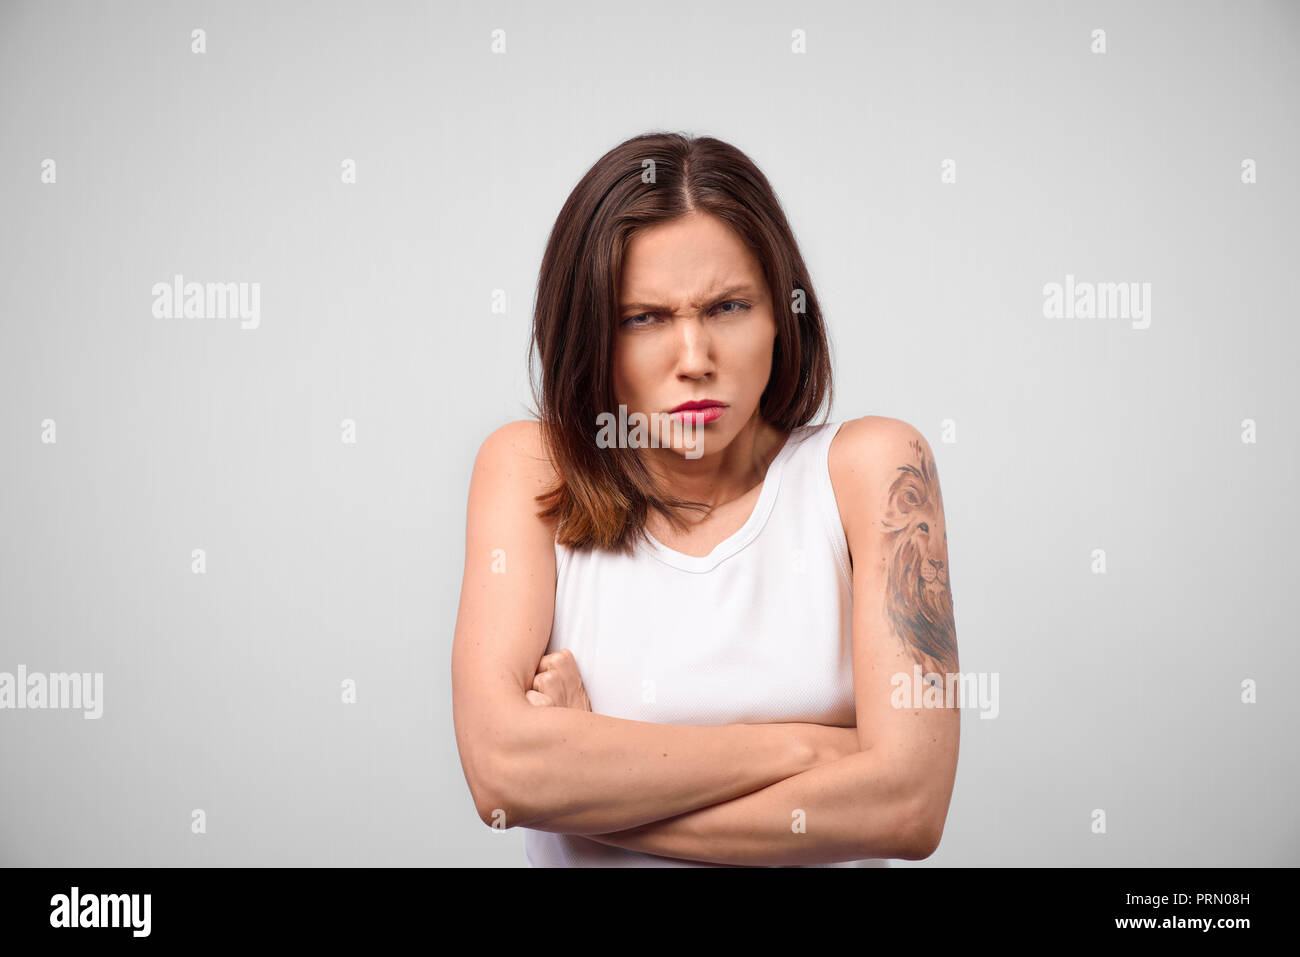 Angry annoyed young housewife keeping arms crossed and staring at camera with sceptical and distrustful look, feeling mad at someone. Human facial exp - Stock Image